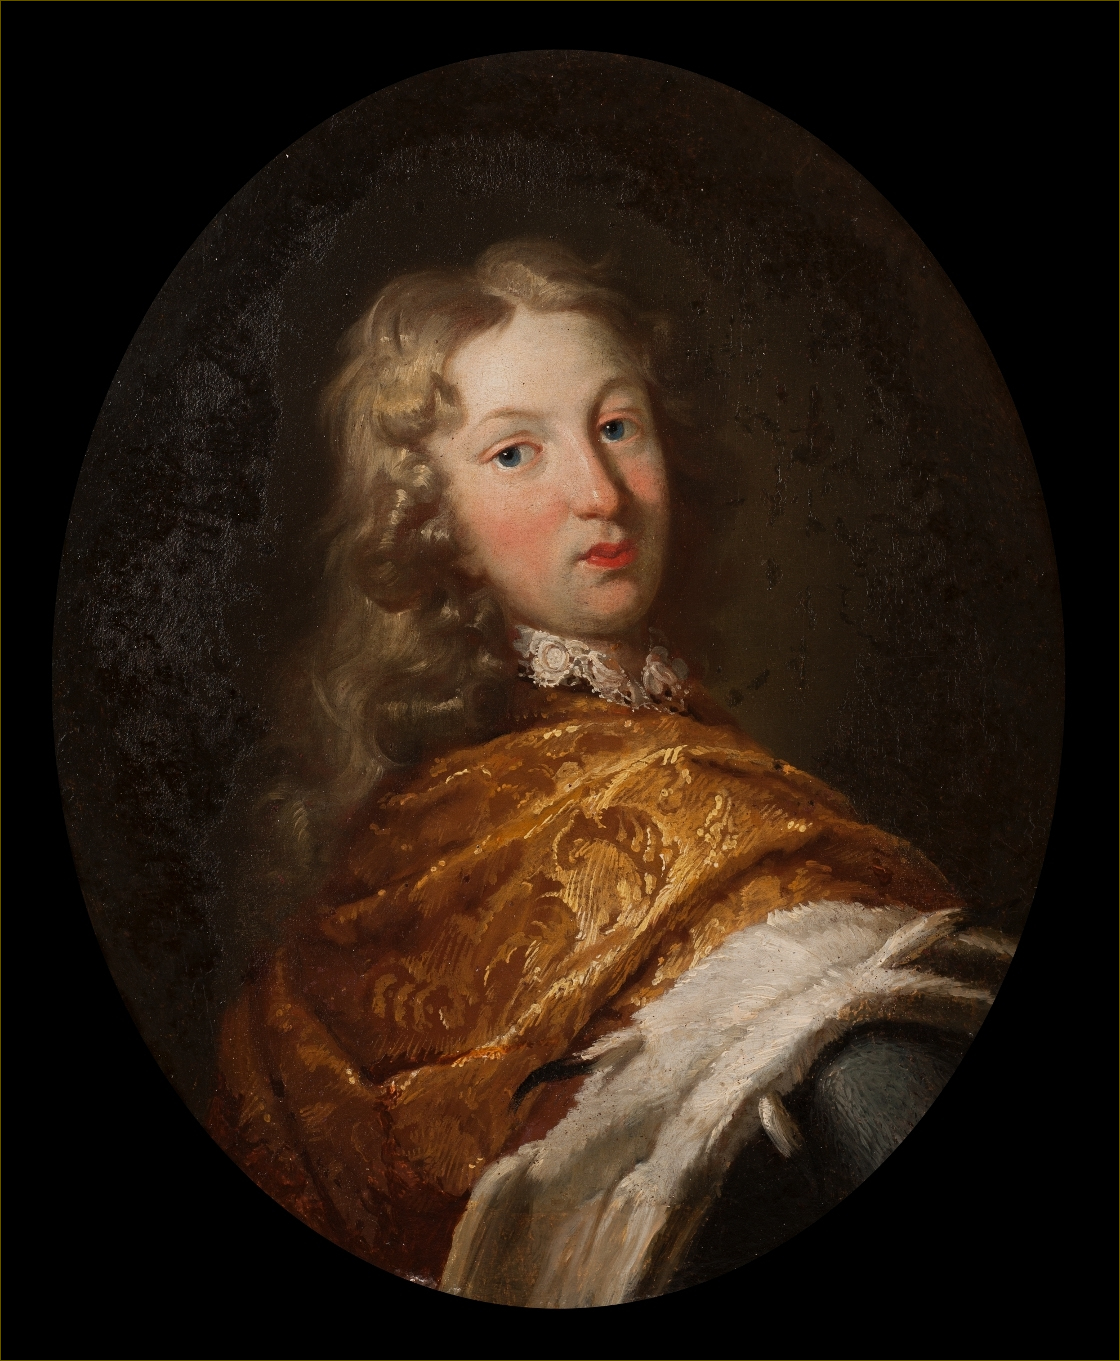 Charles III Guillaume, margrave de Bade-Durlach, adolescent